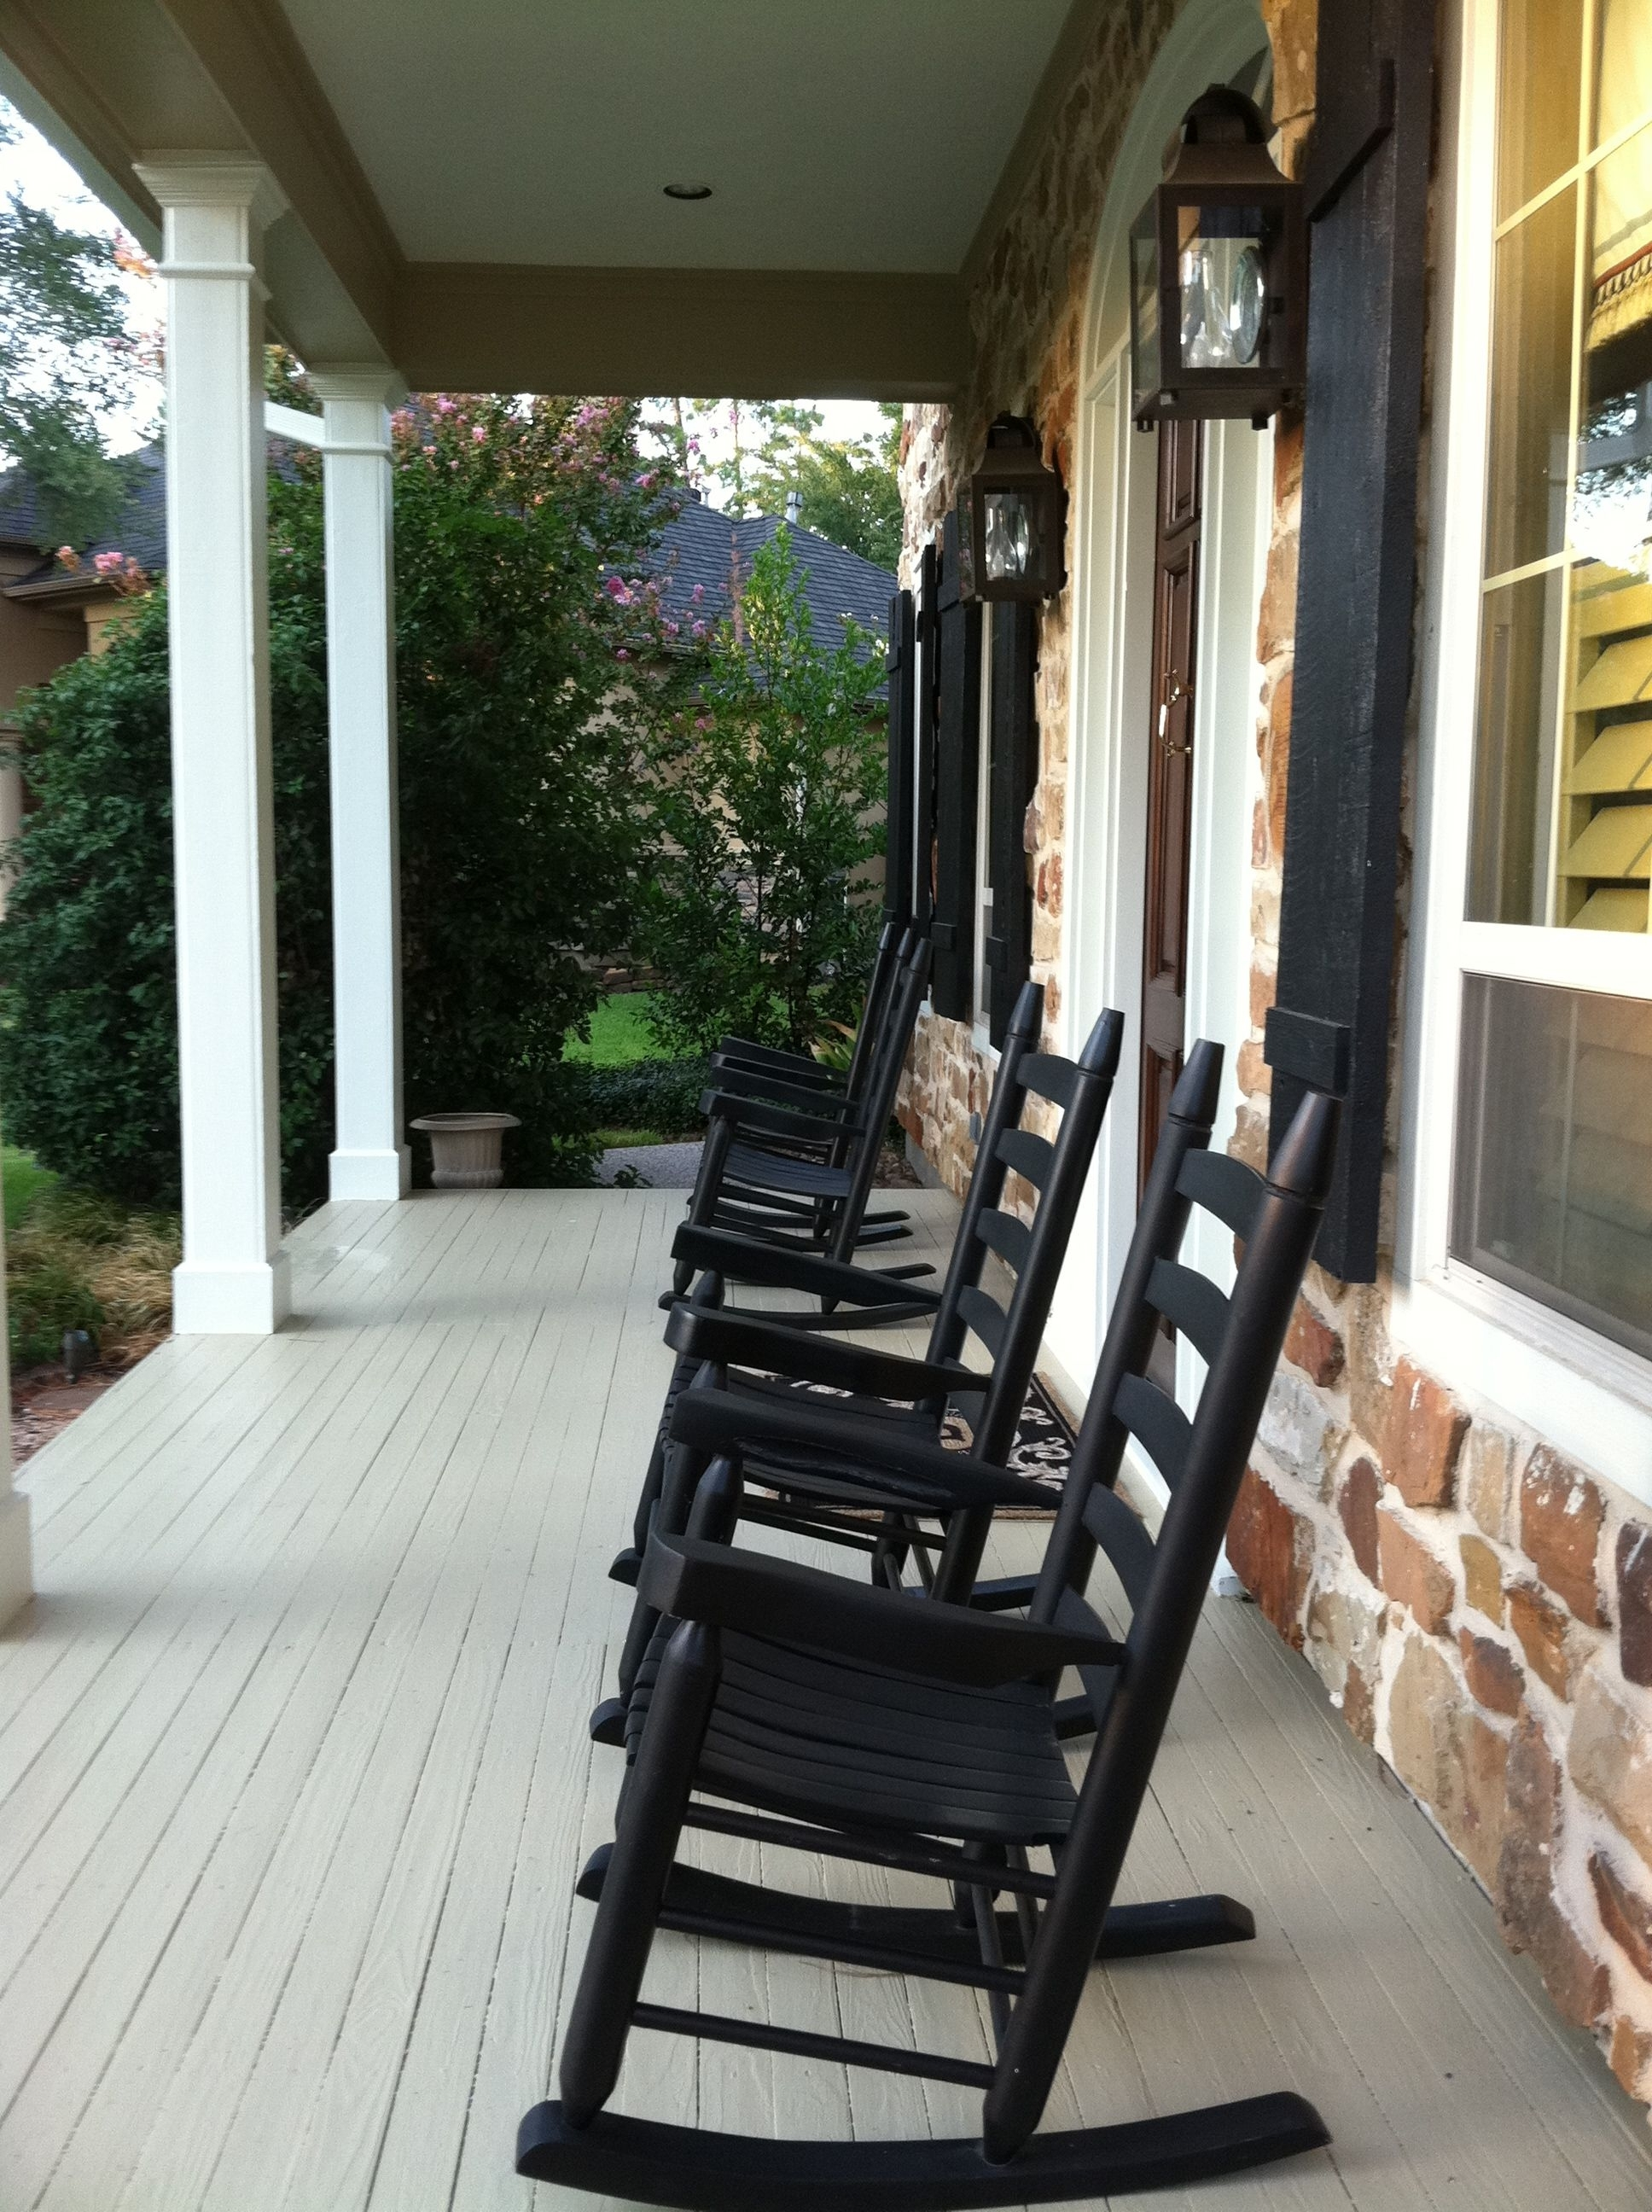 Rocking Chairs For Front Porch Inside Most Popular Outdoor Rocking Chairs: Outdoor Rocking Chairs Black Porch (View 10 of 20)